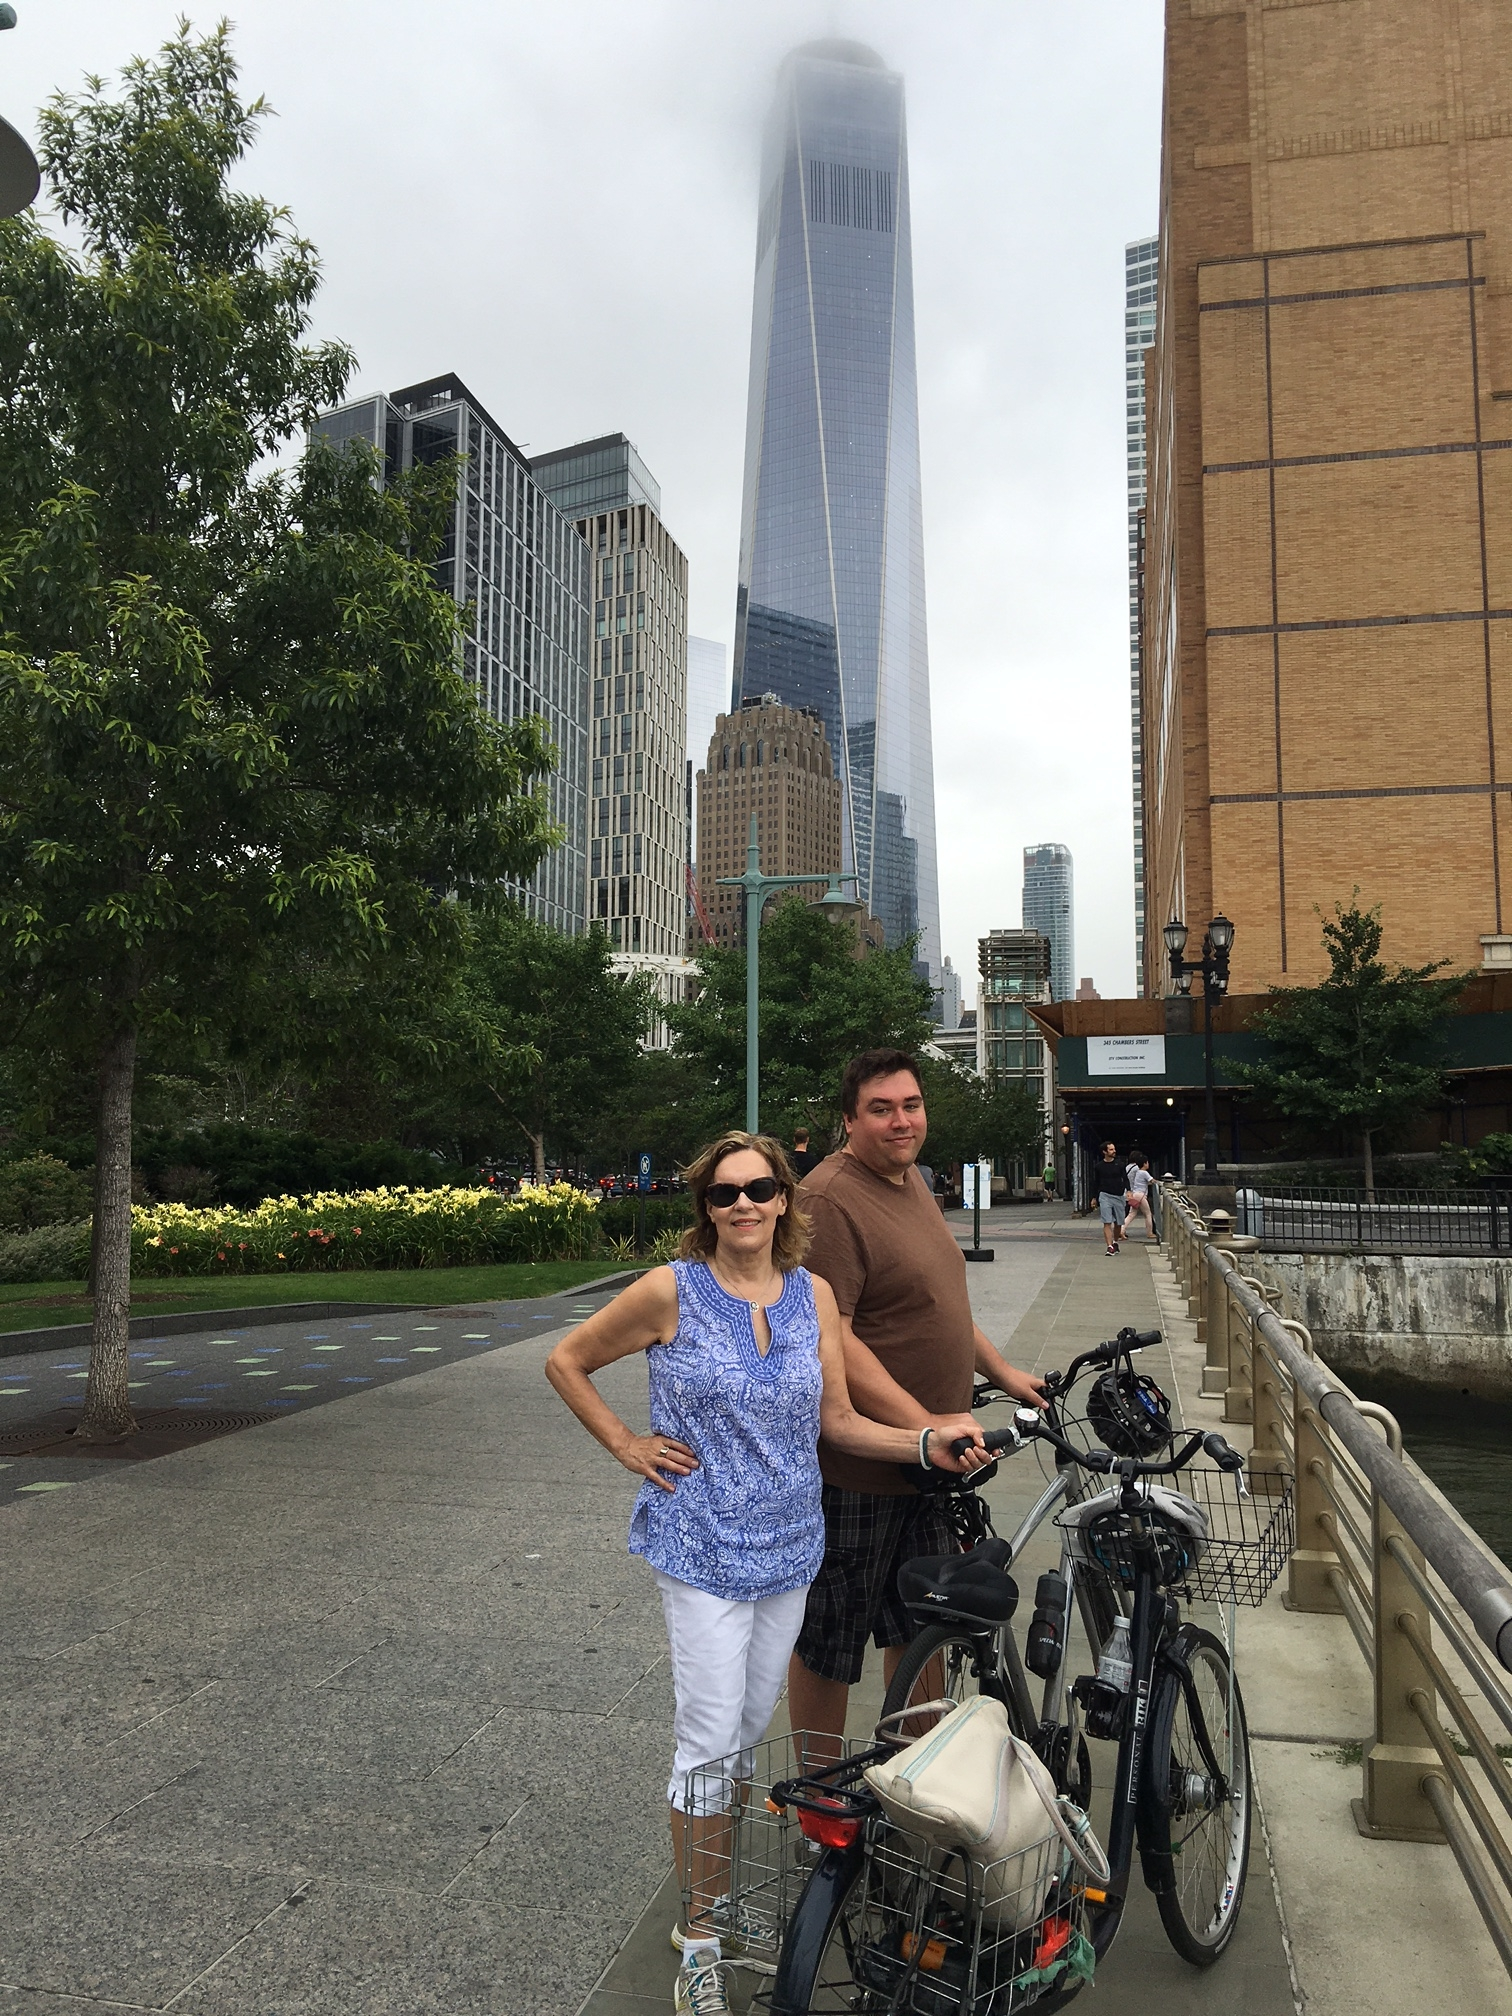 Lorraine & Greg in front of the Freedom Tower, July, 2016